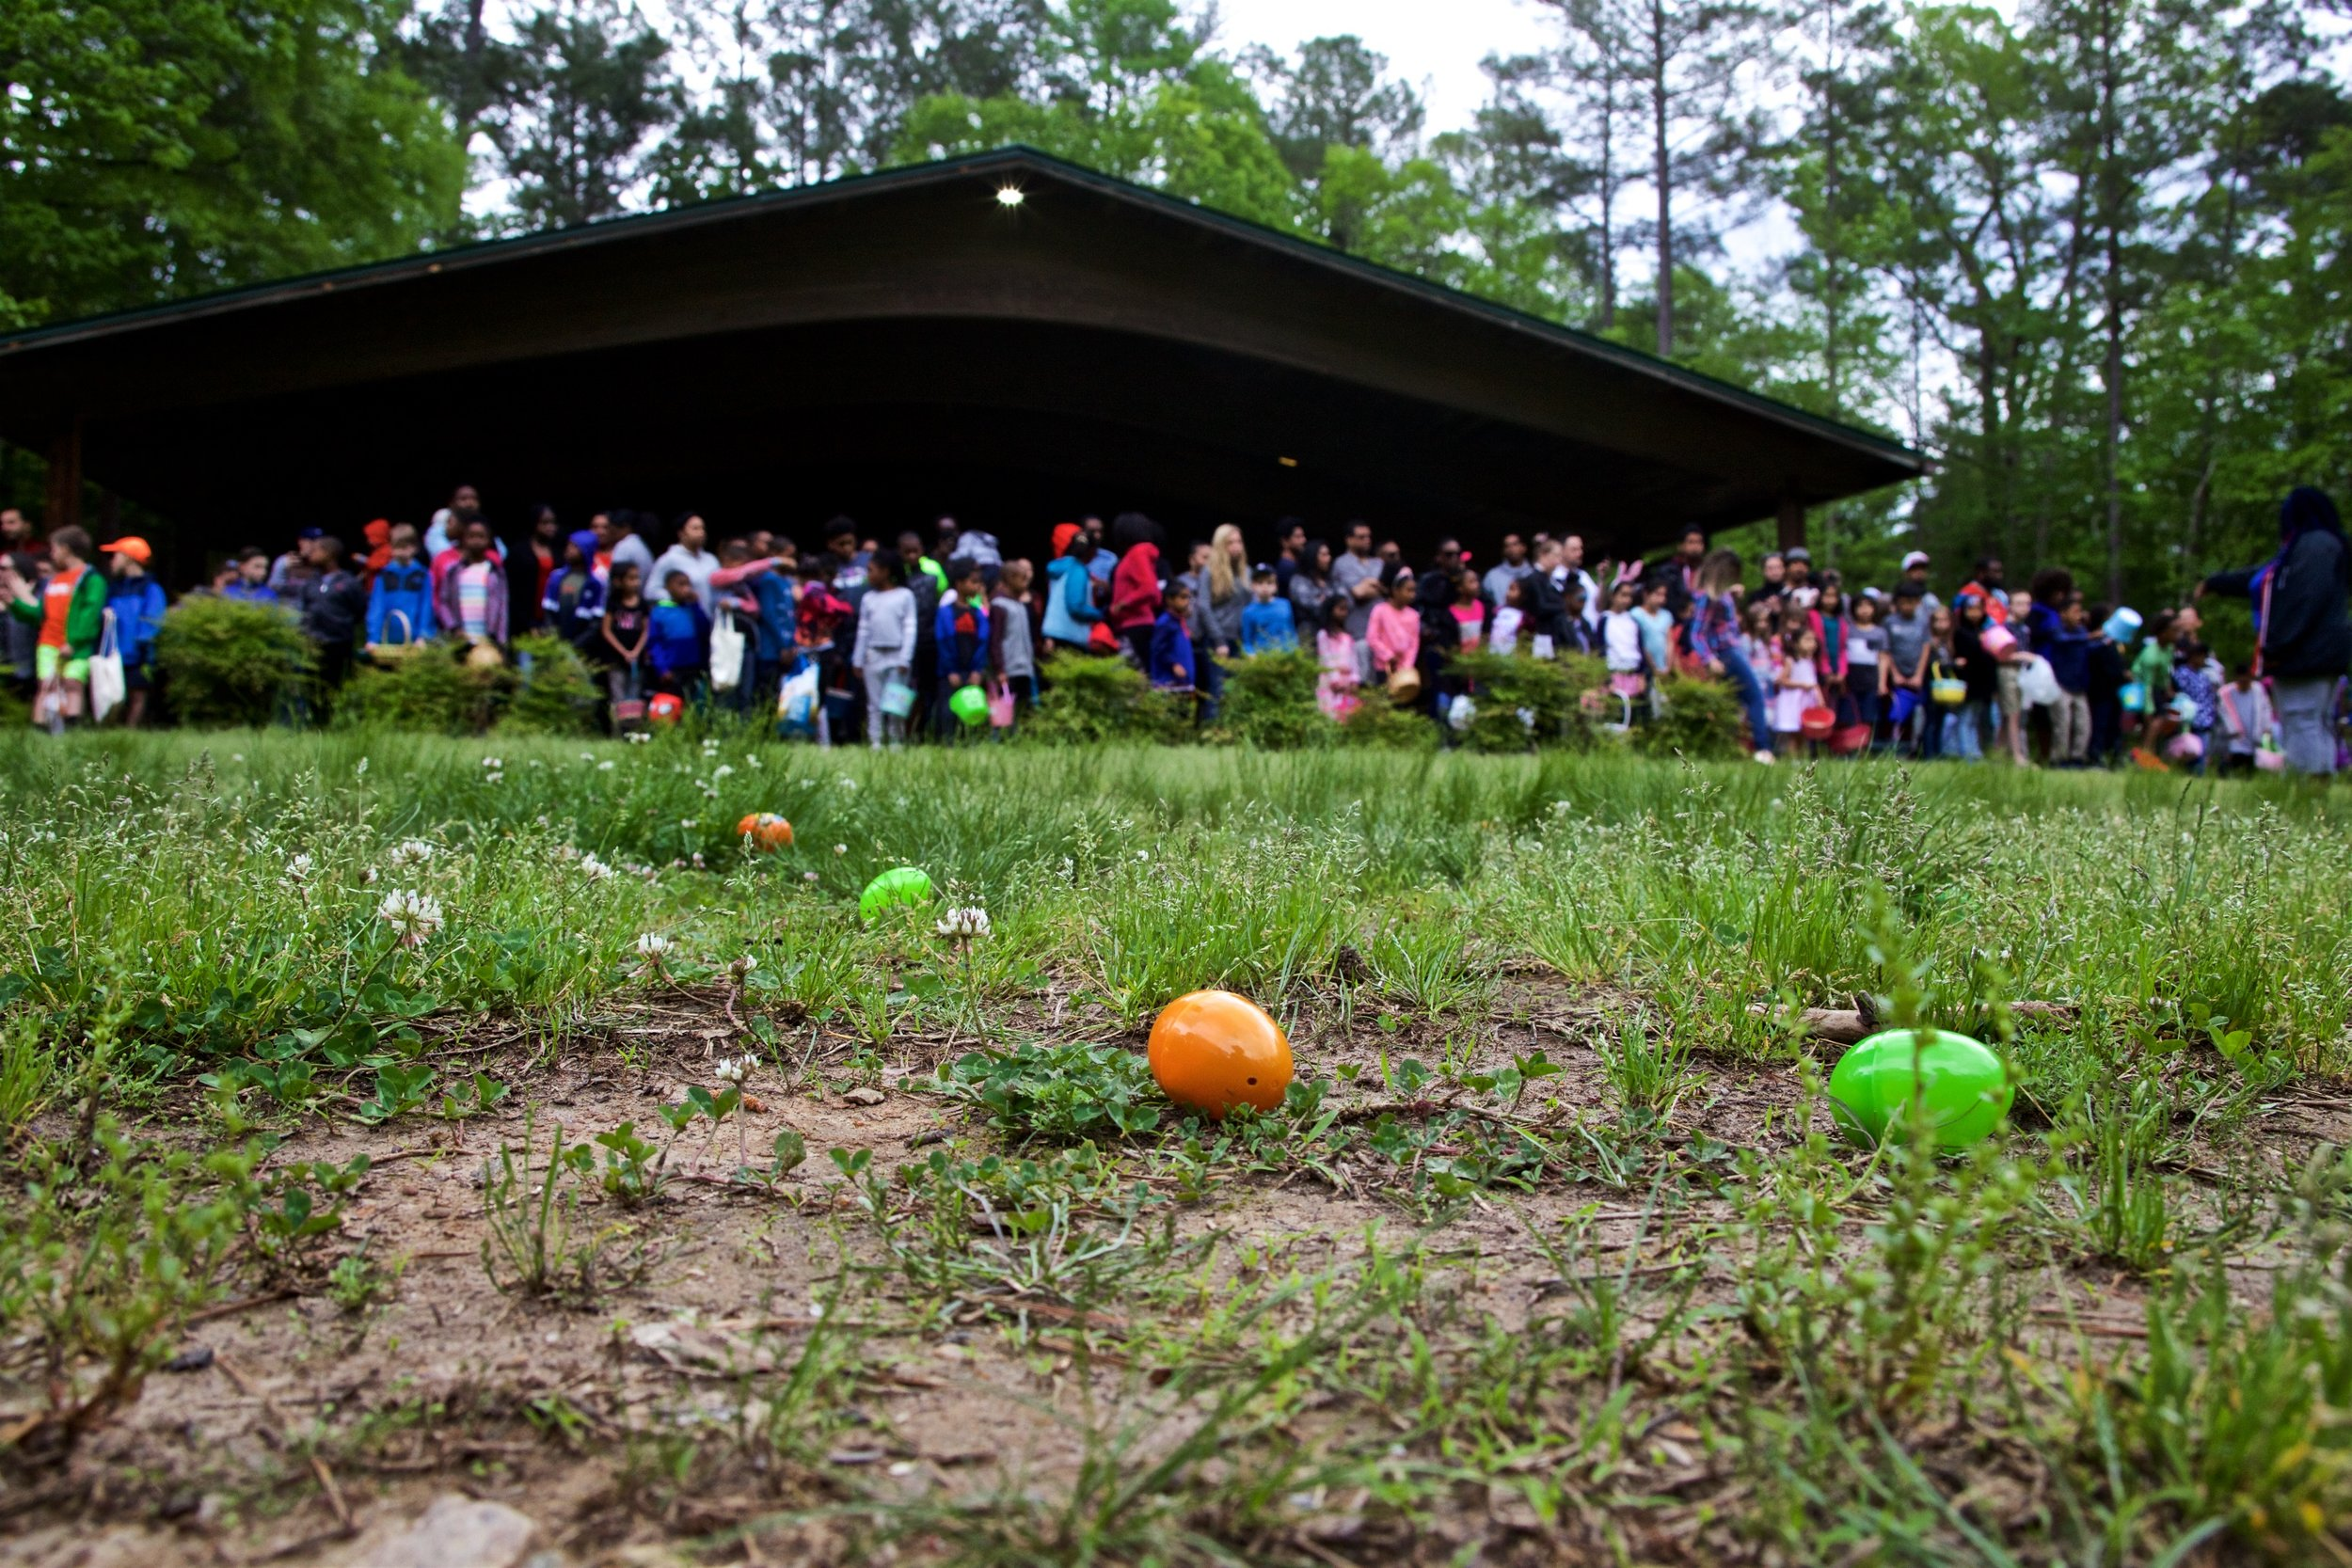 2019.4.20 Raleigh NPHC Easter Egg Hunt by StanChambersJr Photography 24.jpg